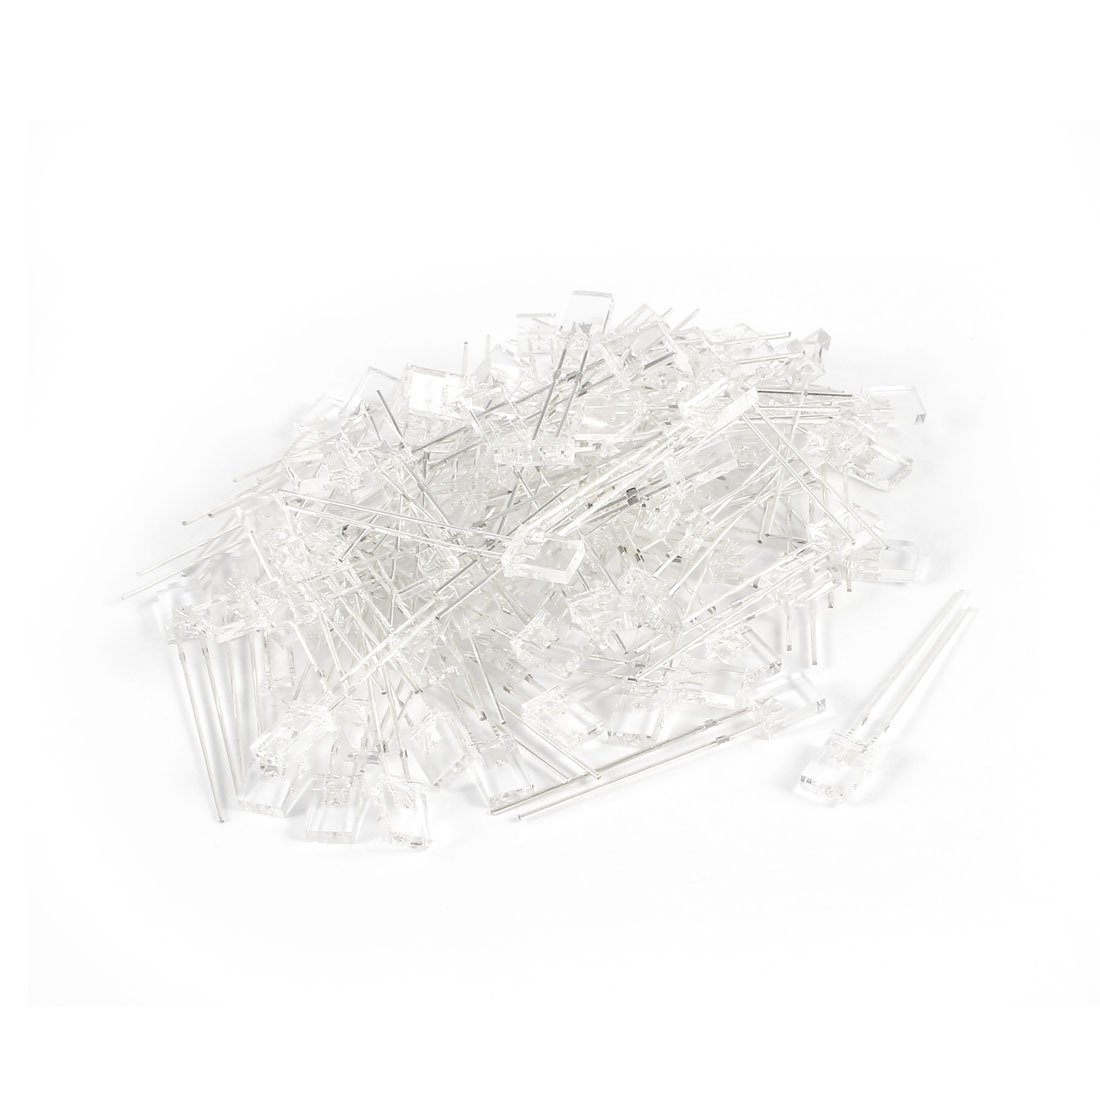 100pcs DC 3.0-3.2V 20mA LED Lamps 2mm x 3mm x 4mm White Light Emitting Diodes